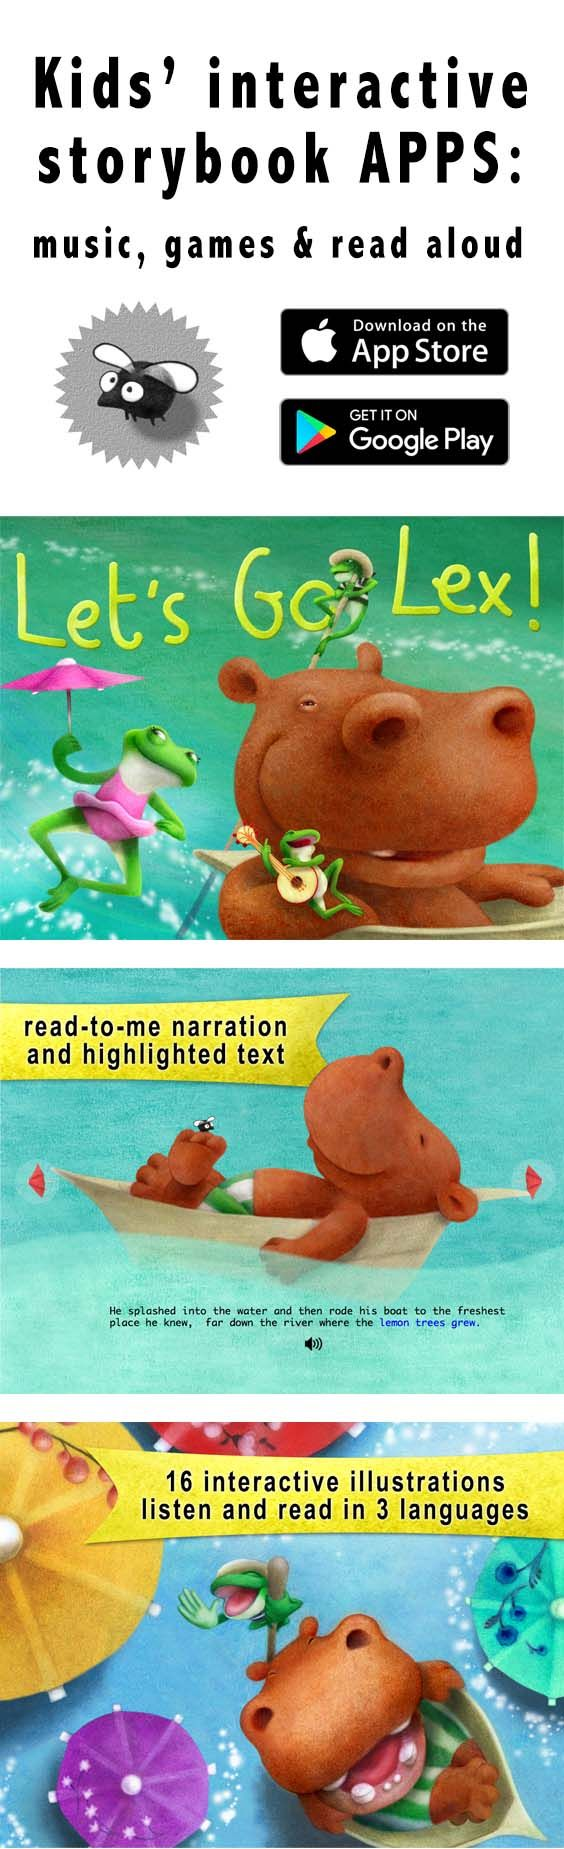 An engaging story for small kids, encourages learning new languages and creativity!